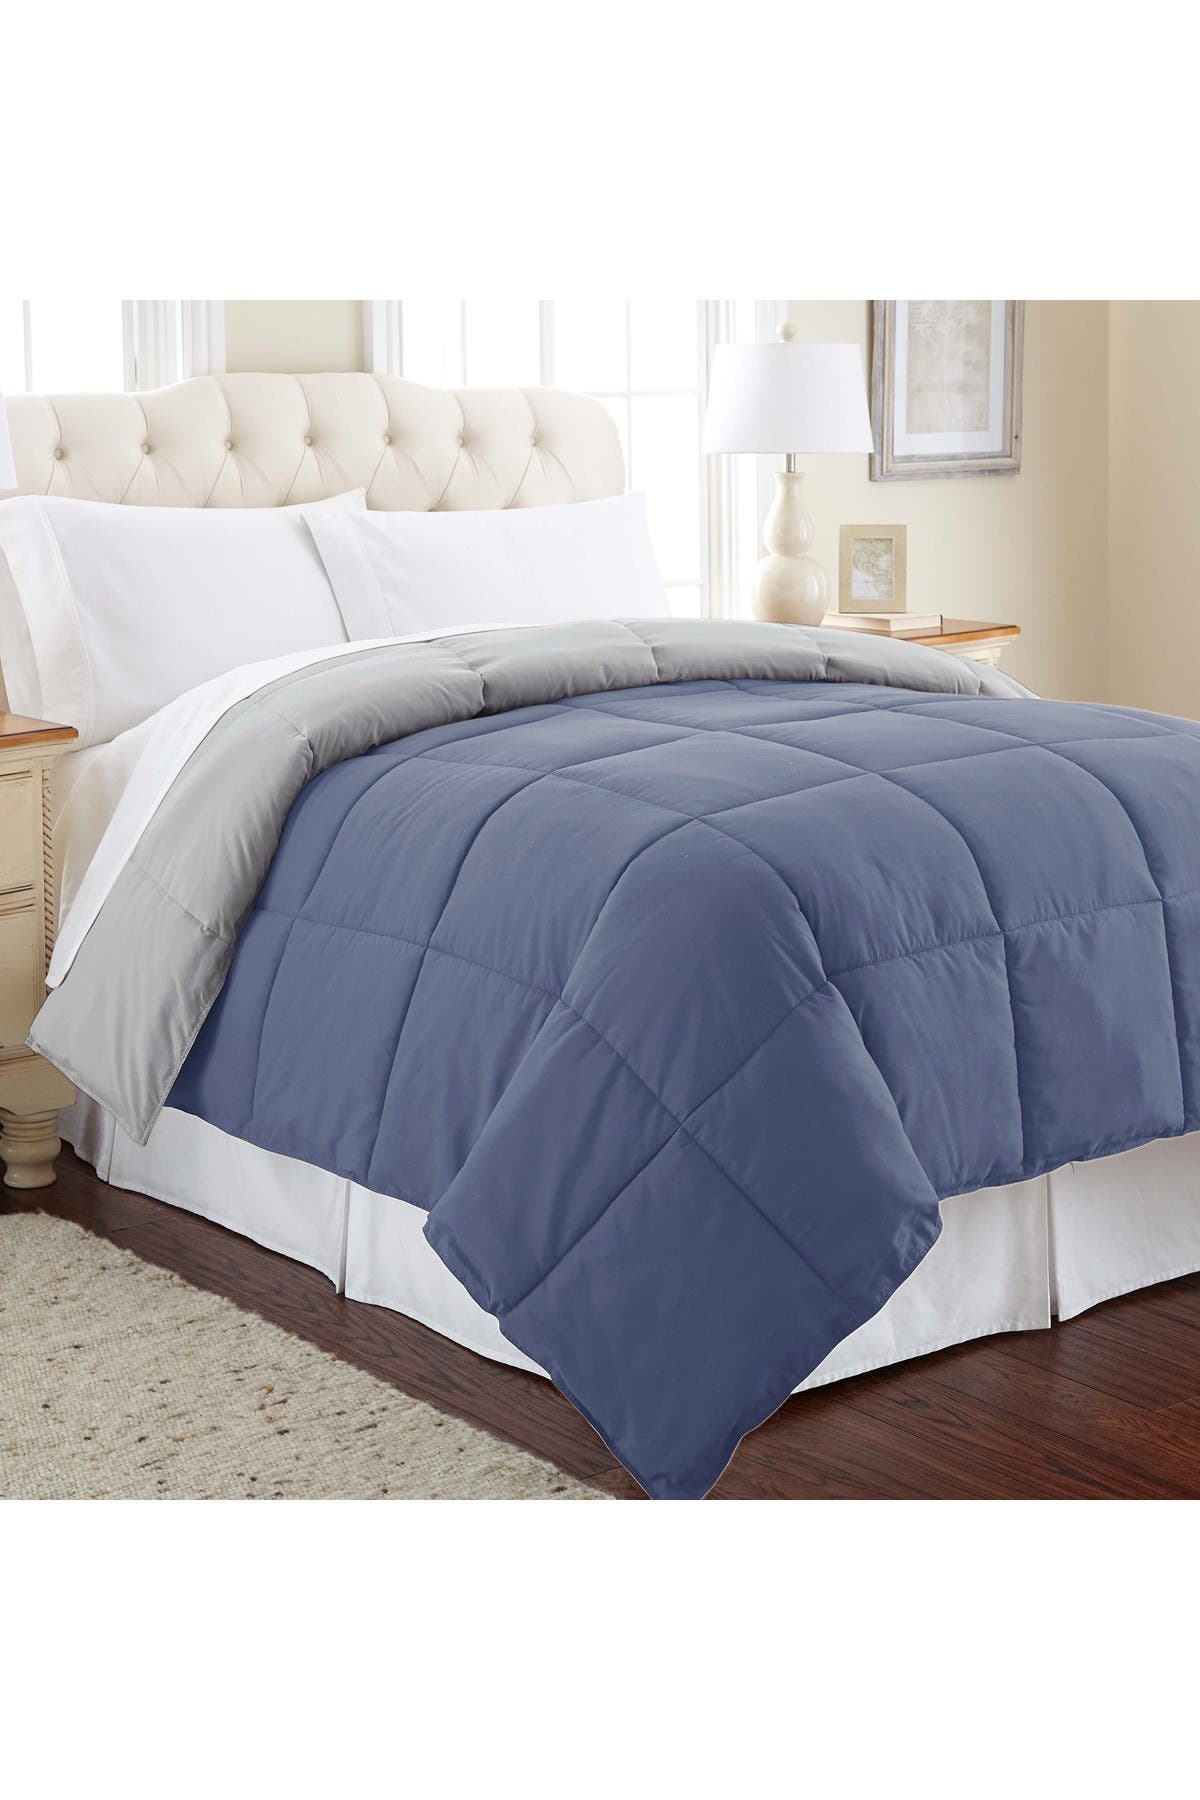 Image of Modern Threads King Down Alternative Reversible Comforter - Infinity Blue/Silver